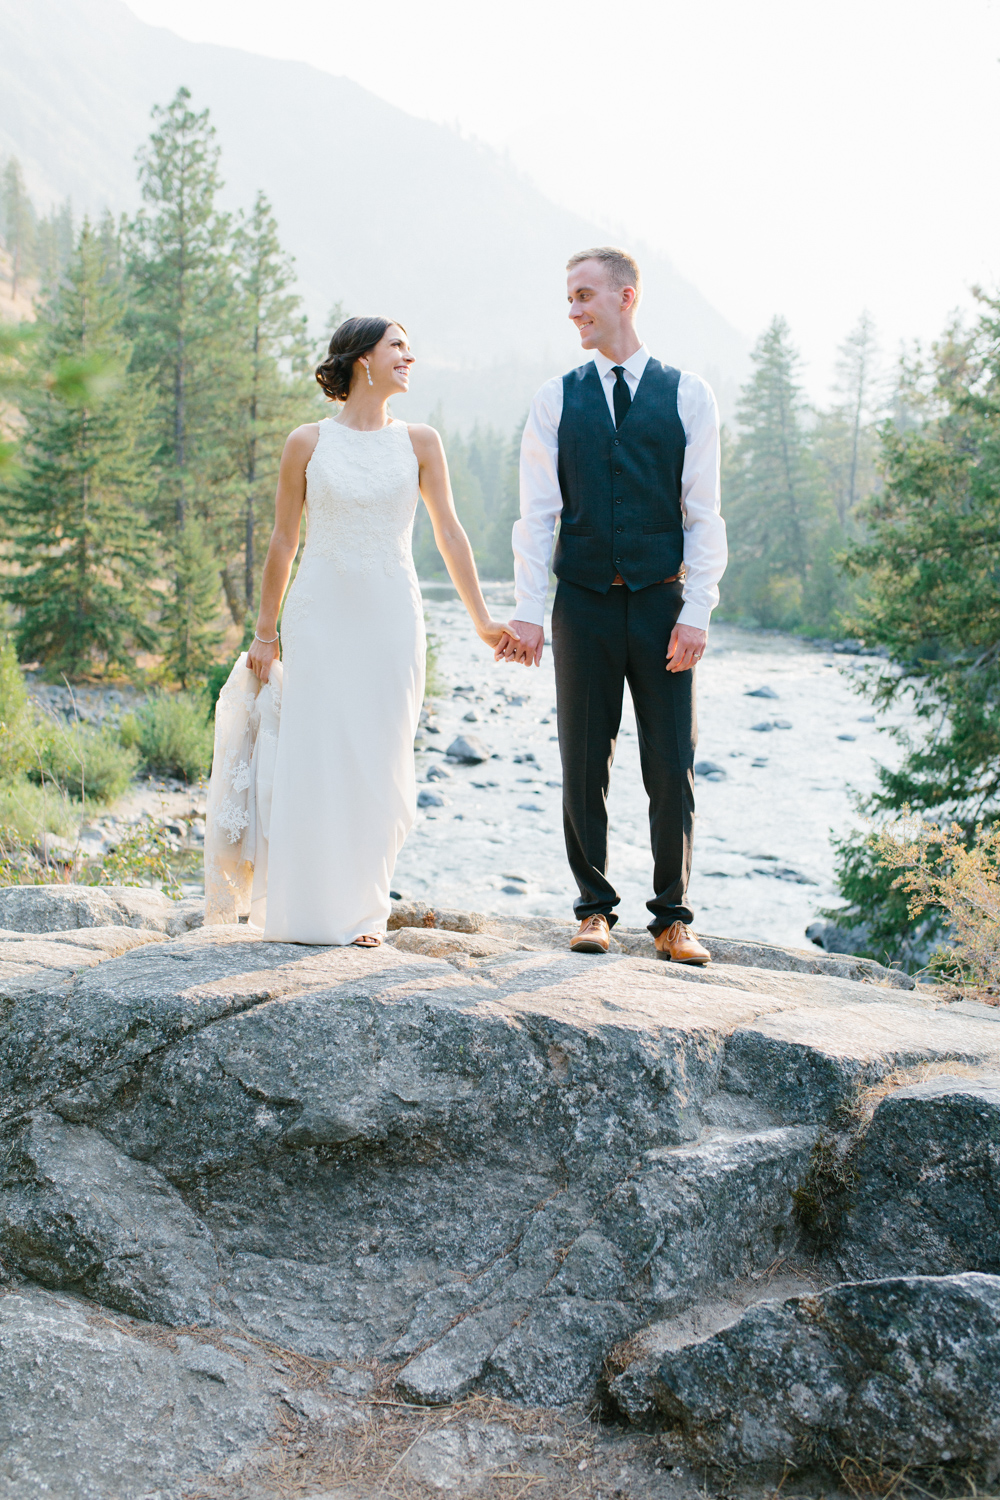 Grey and White Wedding in the Mountains of Leavenworth, Washington | Sleeping Lady | Classic and Timeless Wedding | VSCO | Stunning Mountain Top Bride and Groom Portraits on the Icicle River.jpg-1420.jpg